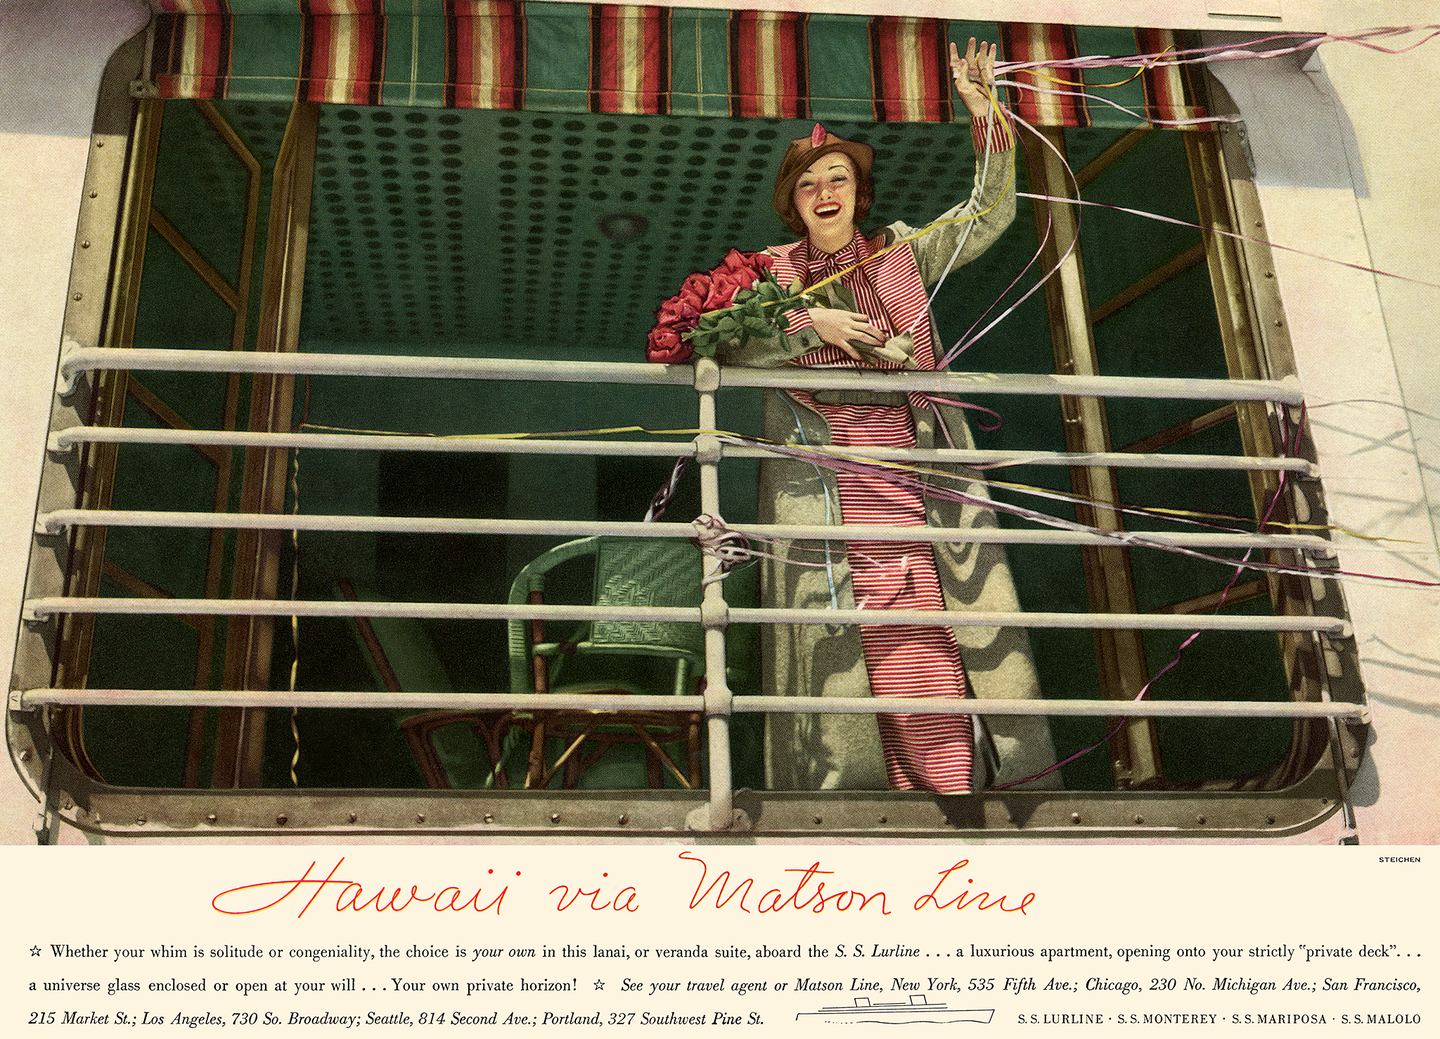 Lanai Aboard the S.S. Lurline, Matson Lines Advertisement, 1936